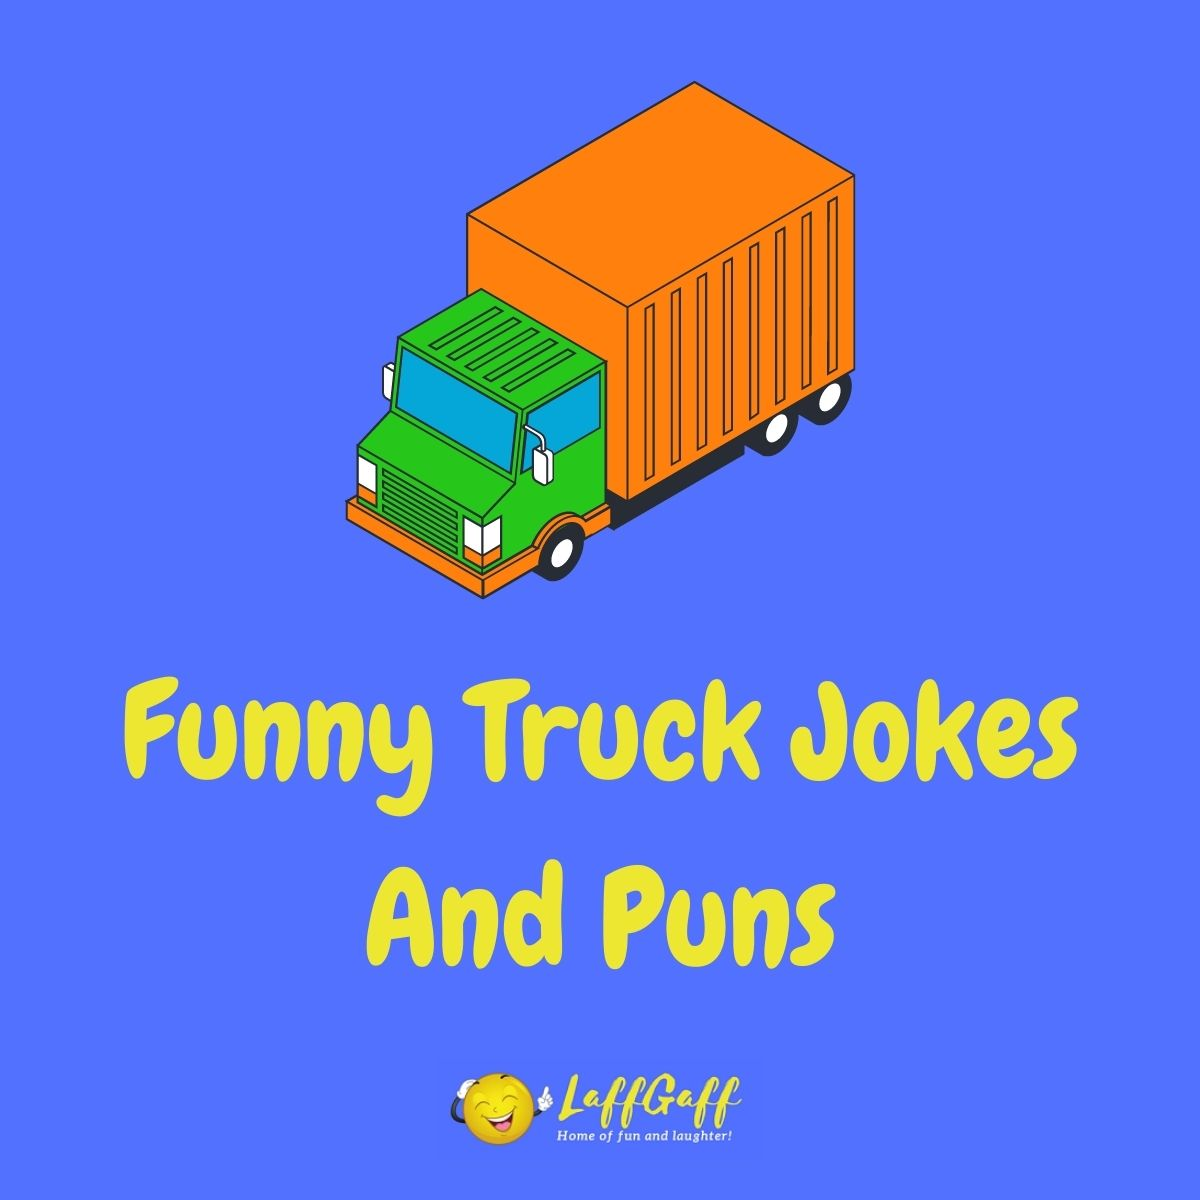 Featured image for a page of funny truck jokes and puns.